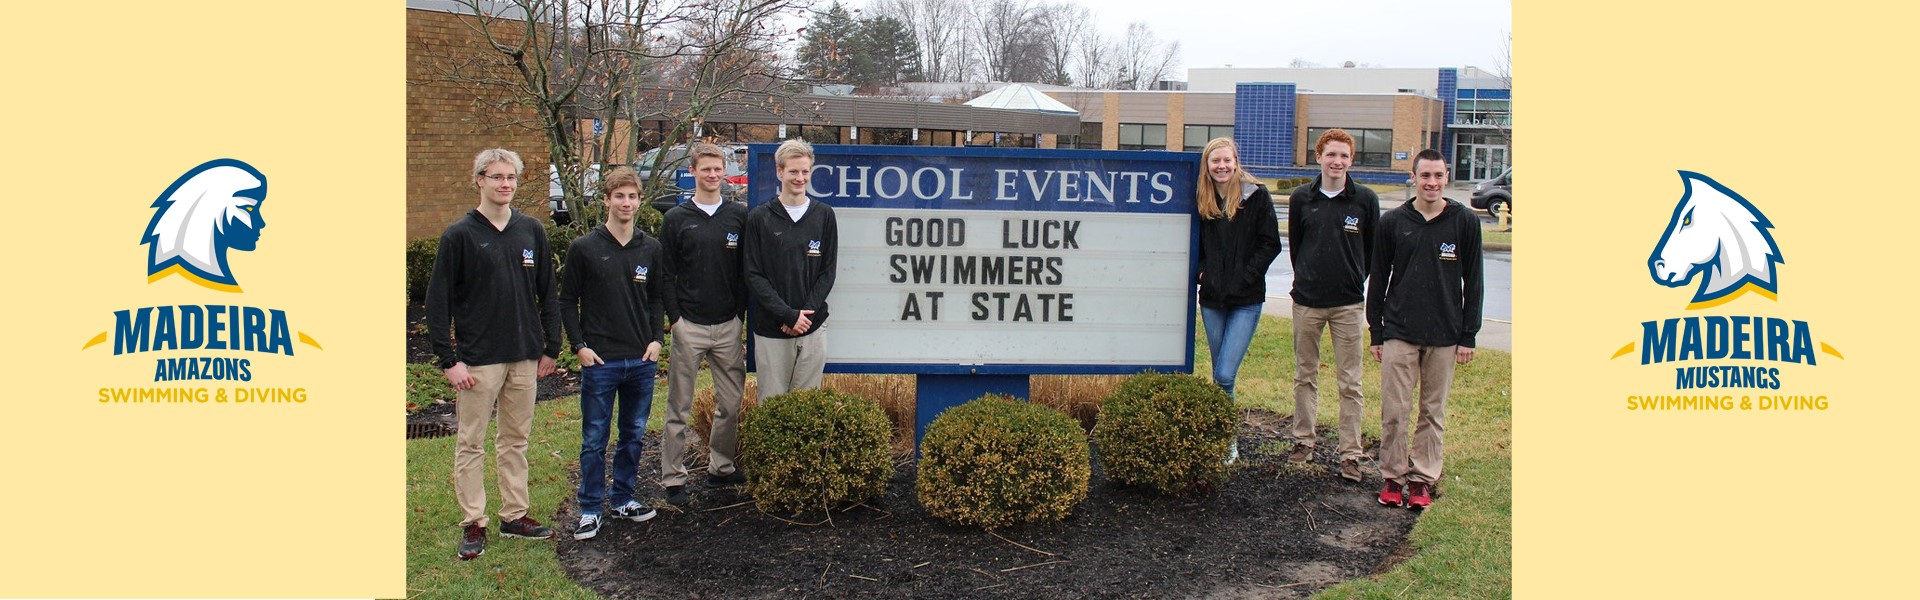 GOOD LUCK AT STATE SWIM FINALS Luke Dobson, Armen Krikorian, Nathan Quante, David Stevenson, Emma Fortman, Logan Kaising, and Chet Dobson!